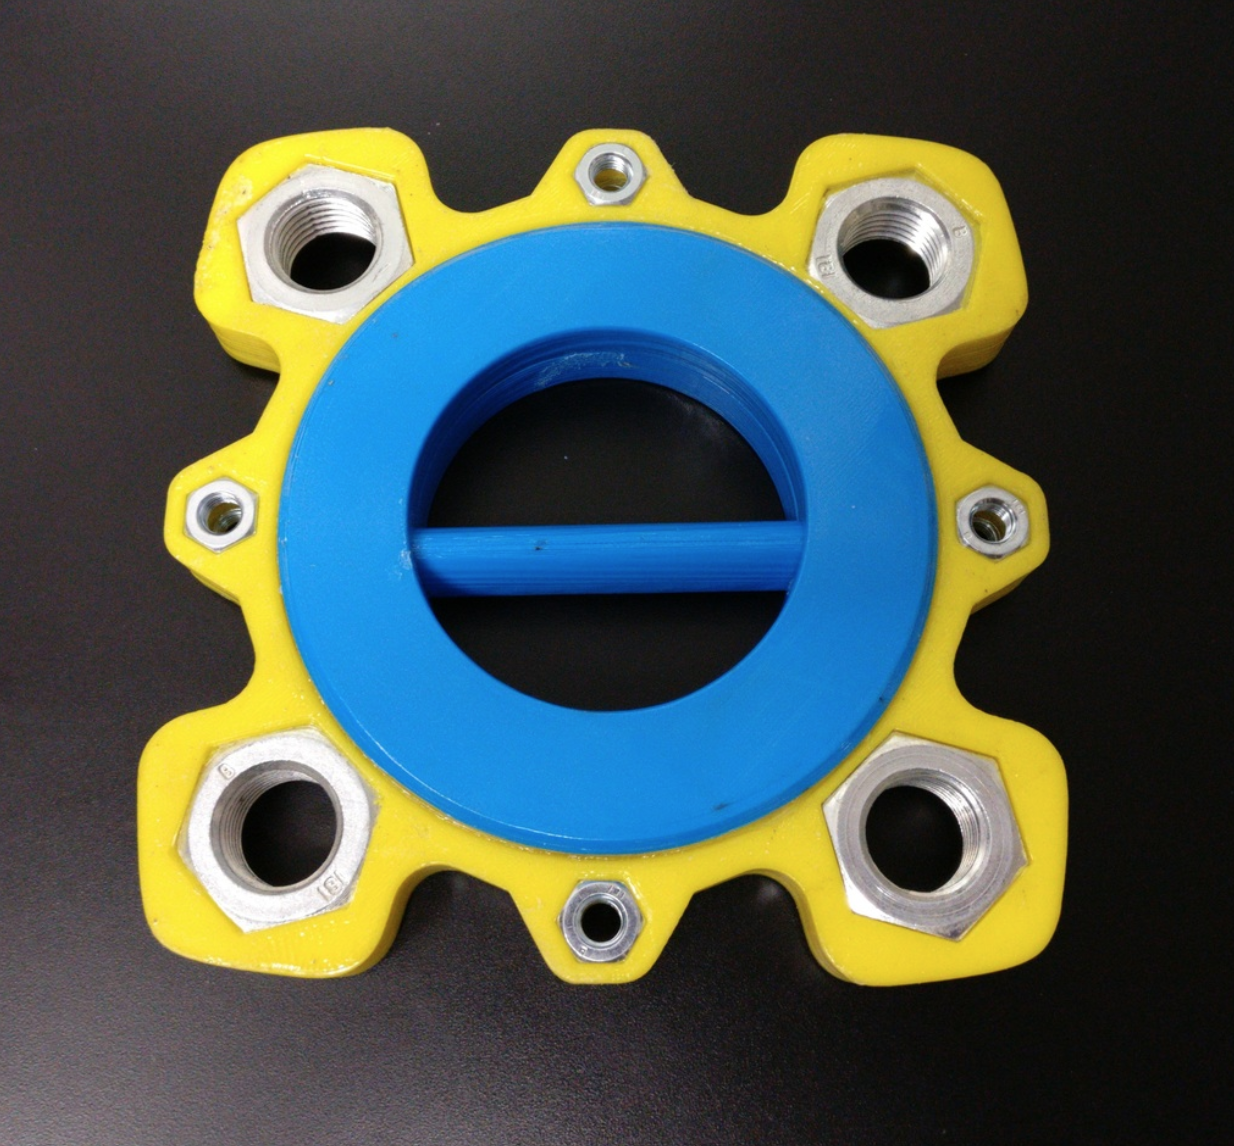 Capture d'écran 2017-11-28 à 18.01.18.png Download free STL file Giant fidget spinner, 6020 bearing and M27 + M10 nuts • 3D printing object, xTremePower